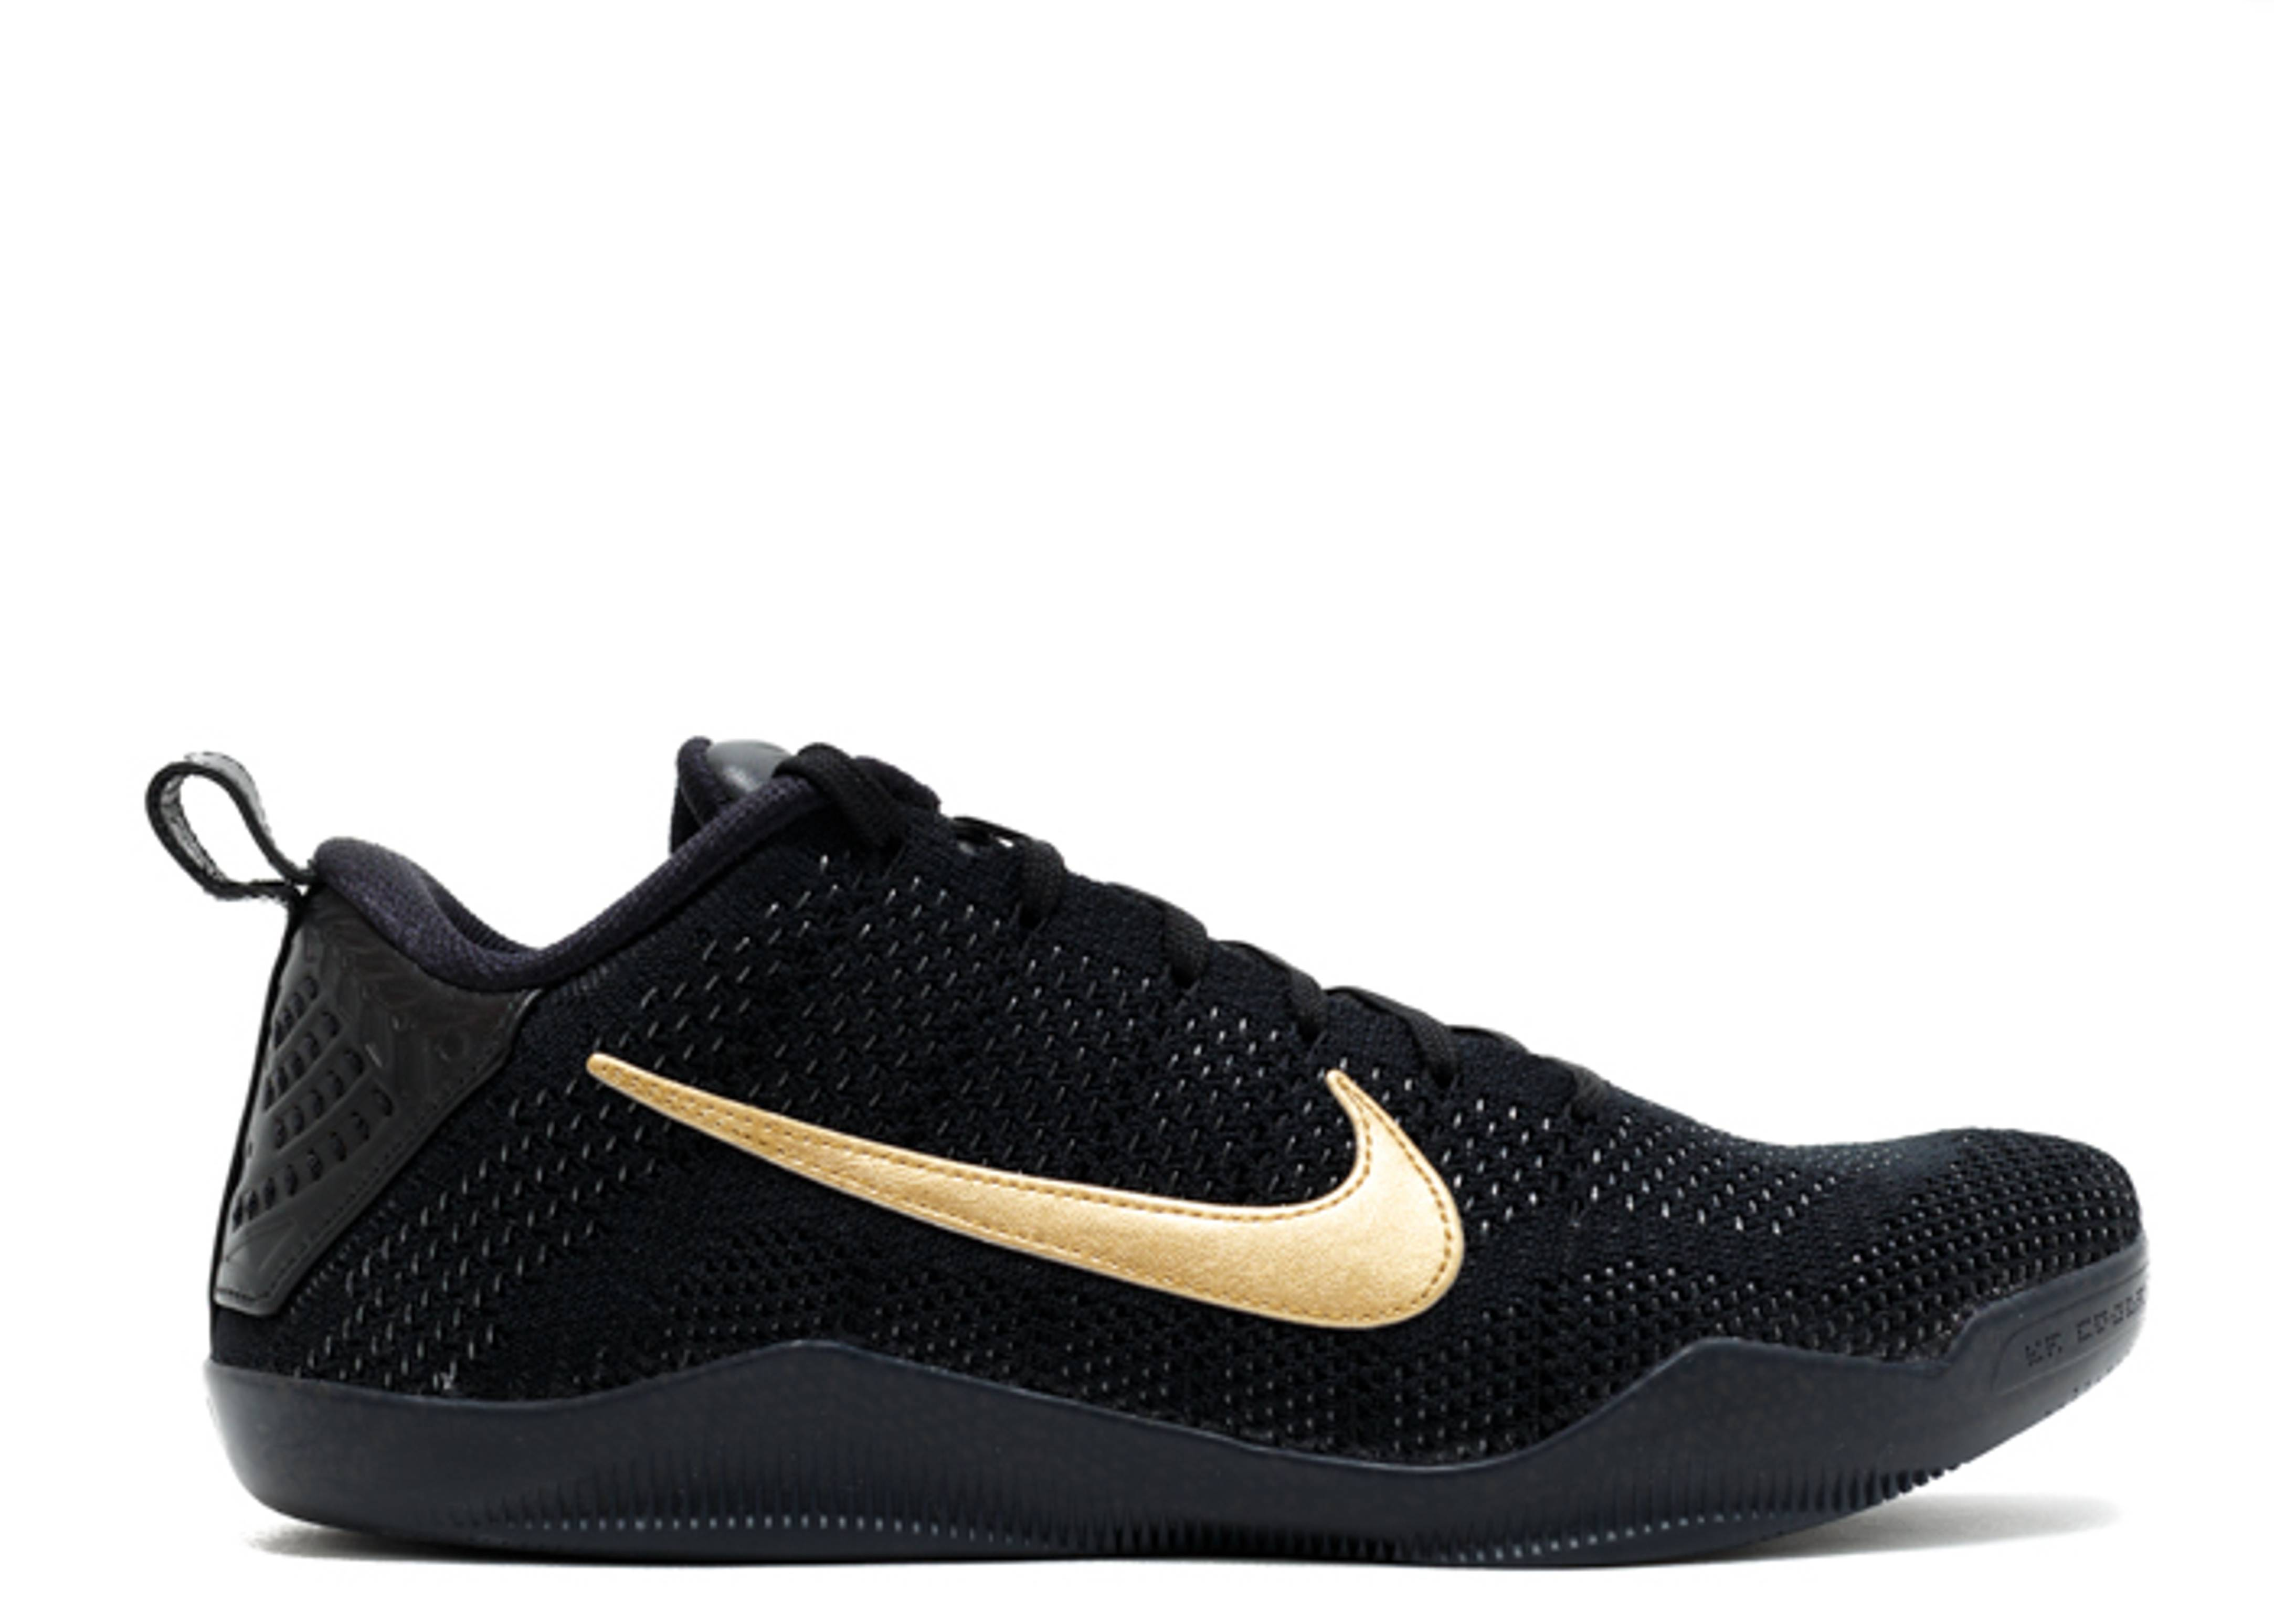 63596253257-nike-kobe-11-elite-low-ftb-fade-to-black-black-black-042575_1.jpg